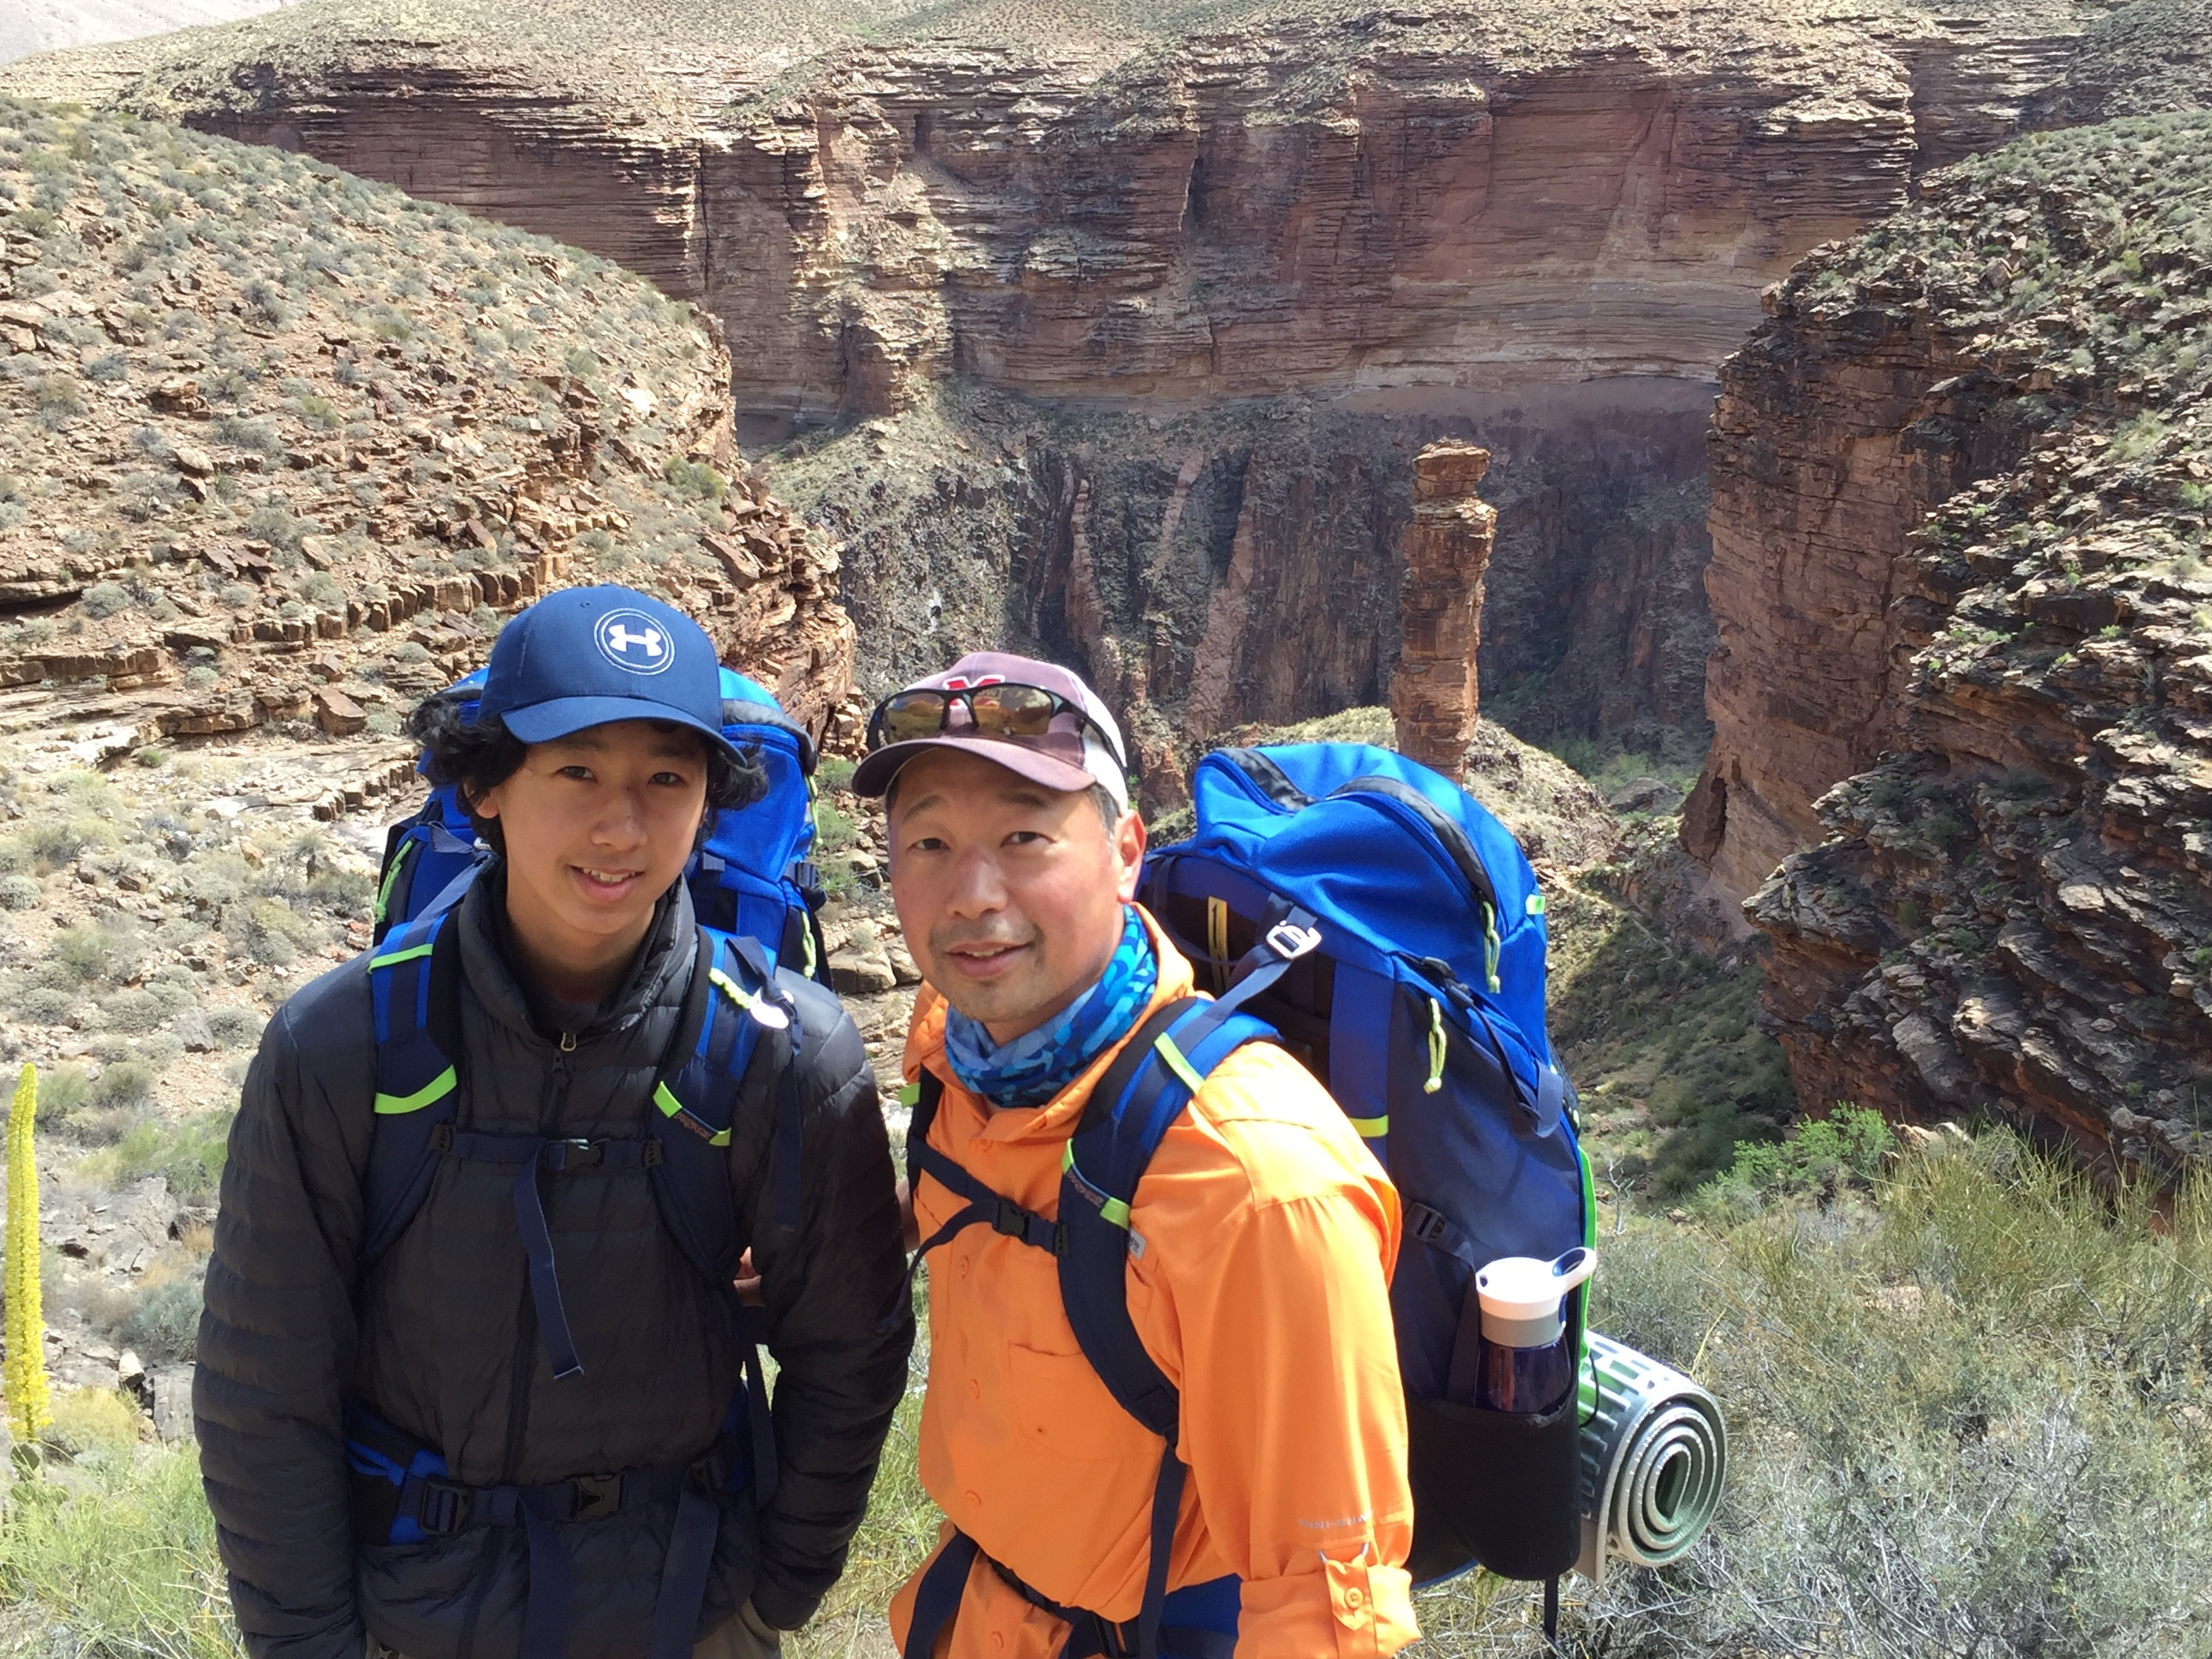 Family Hiking in Monument Canyon on Grand Canyon Challenge